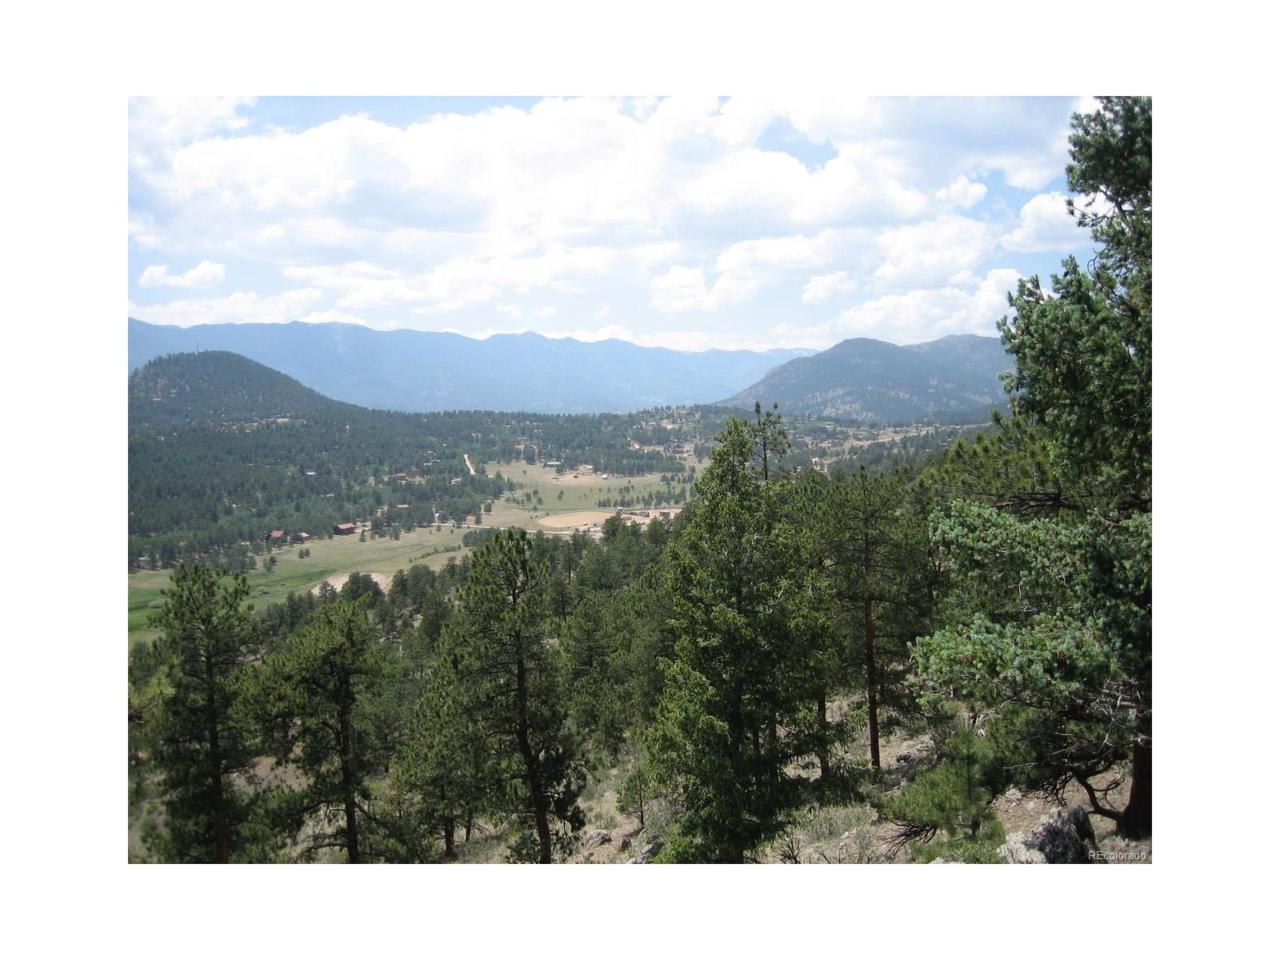 854 Dick Mountain Drive, Bailey, CO 80421 (MLS #3445487) :: 8z Real Estate